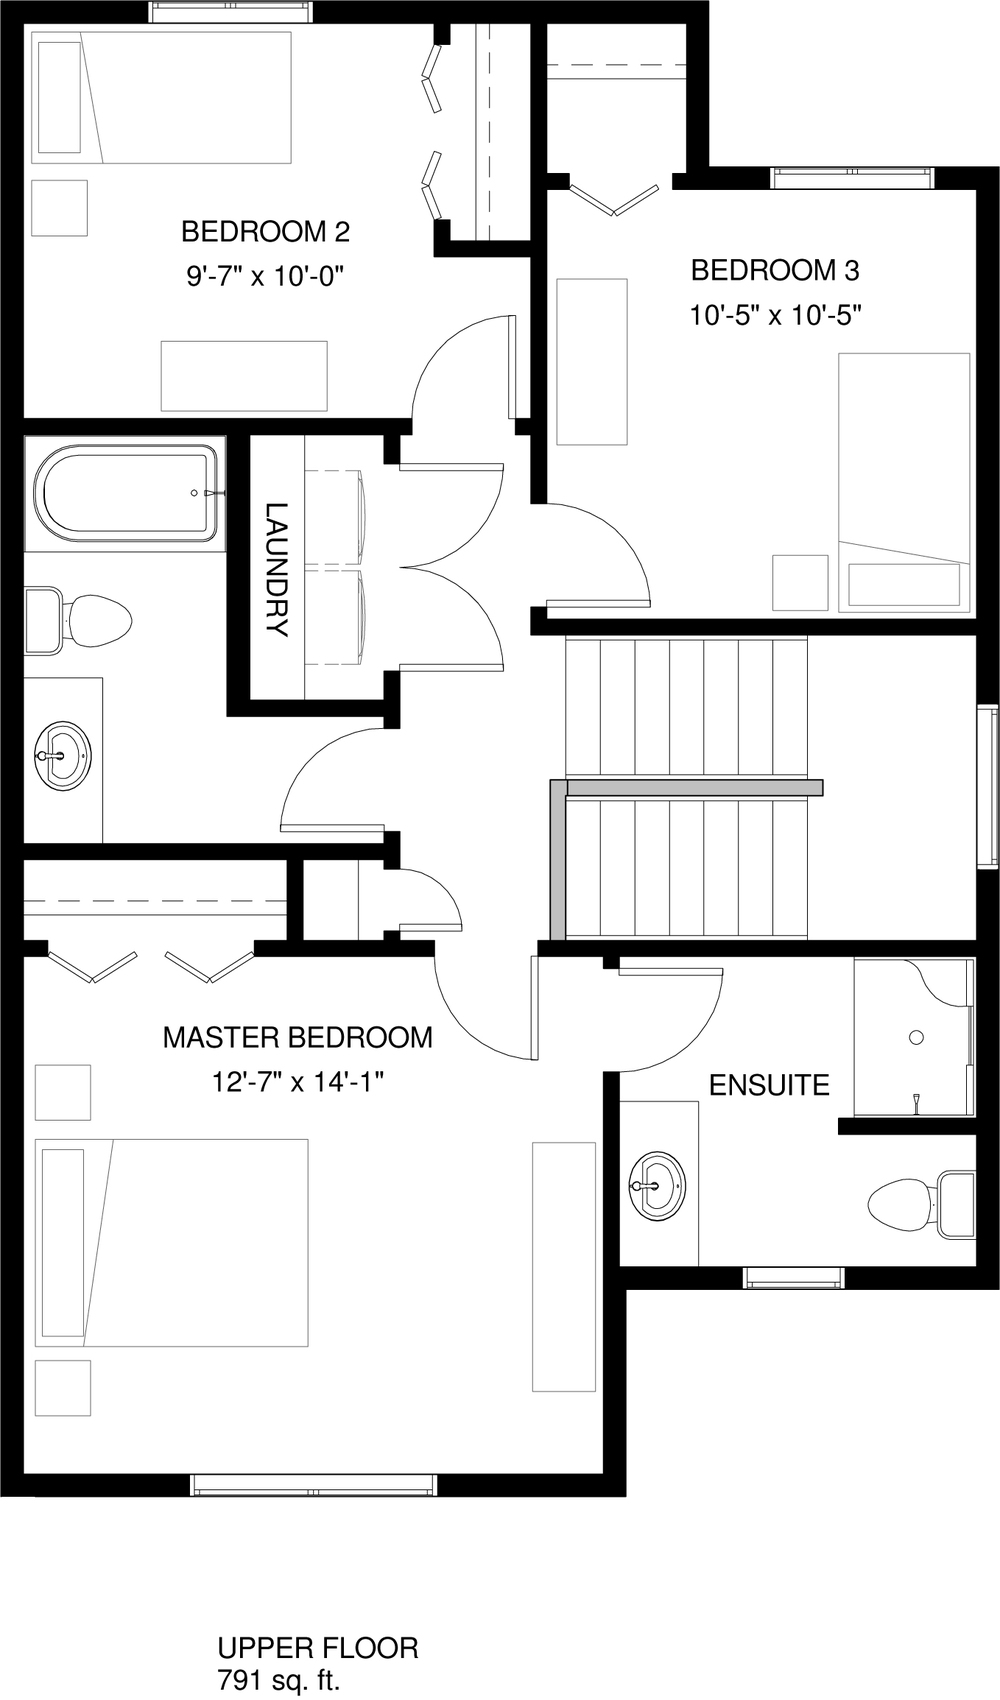 Upper Floor   791 sq ft